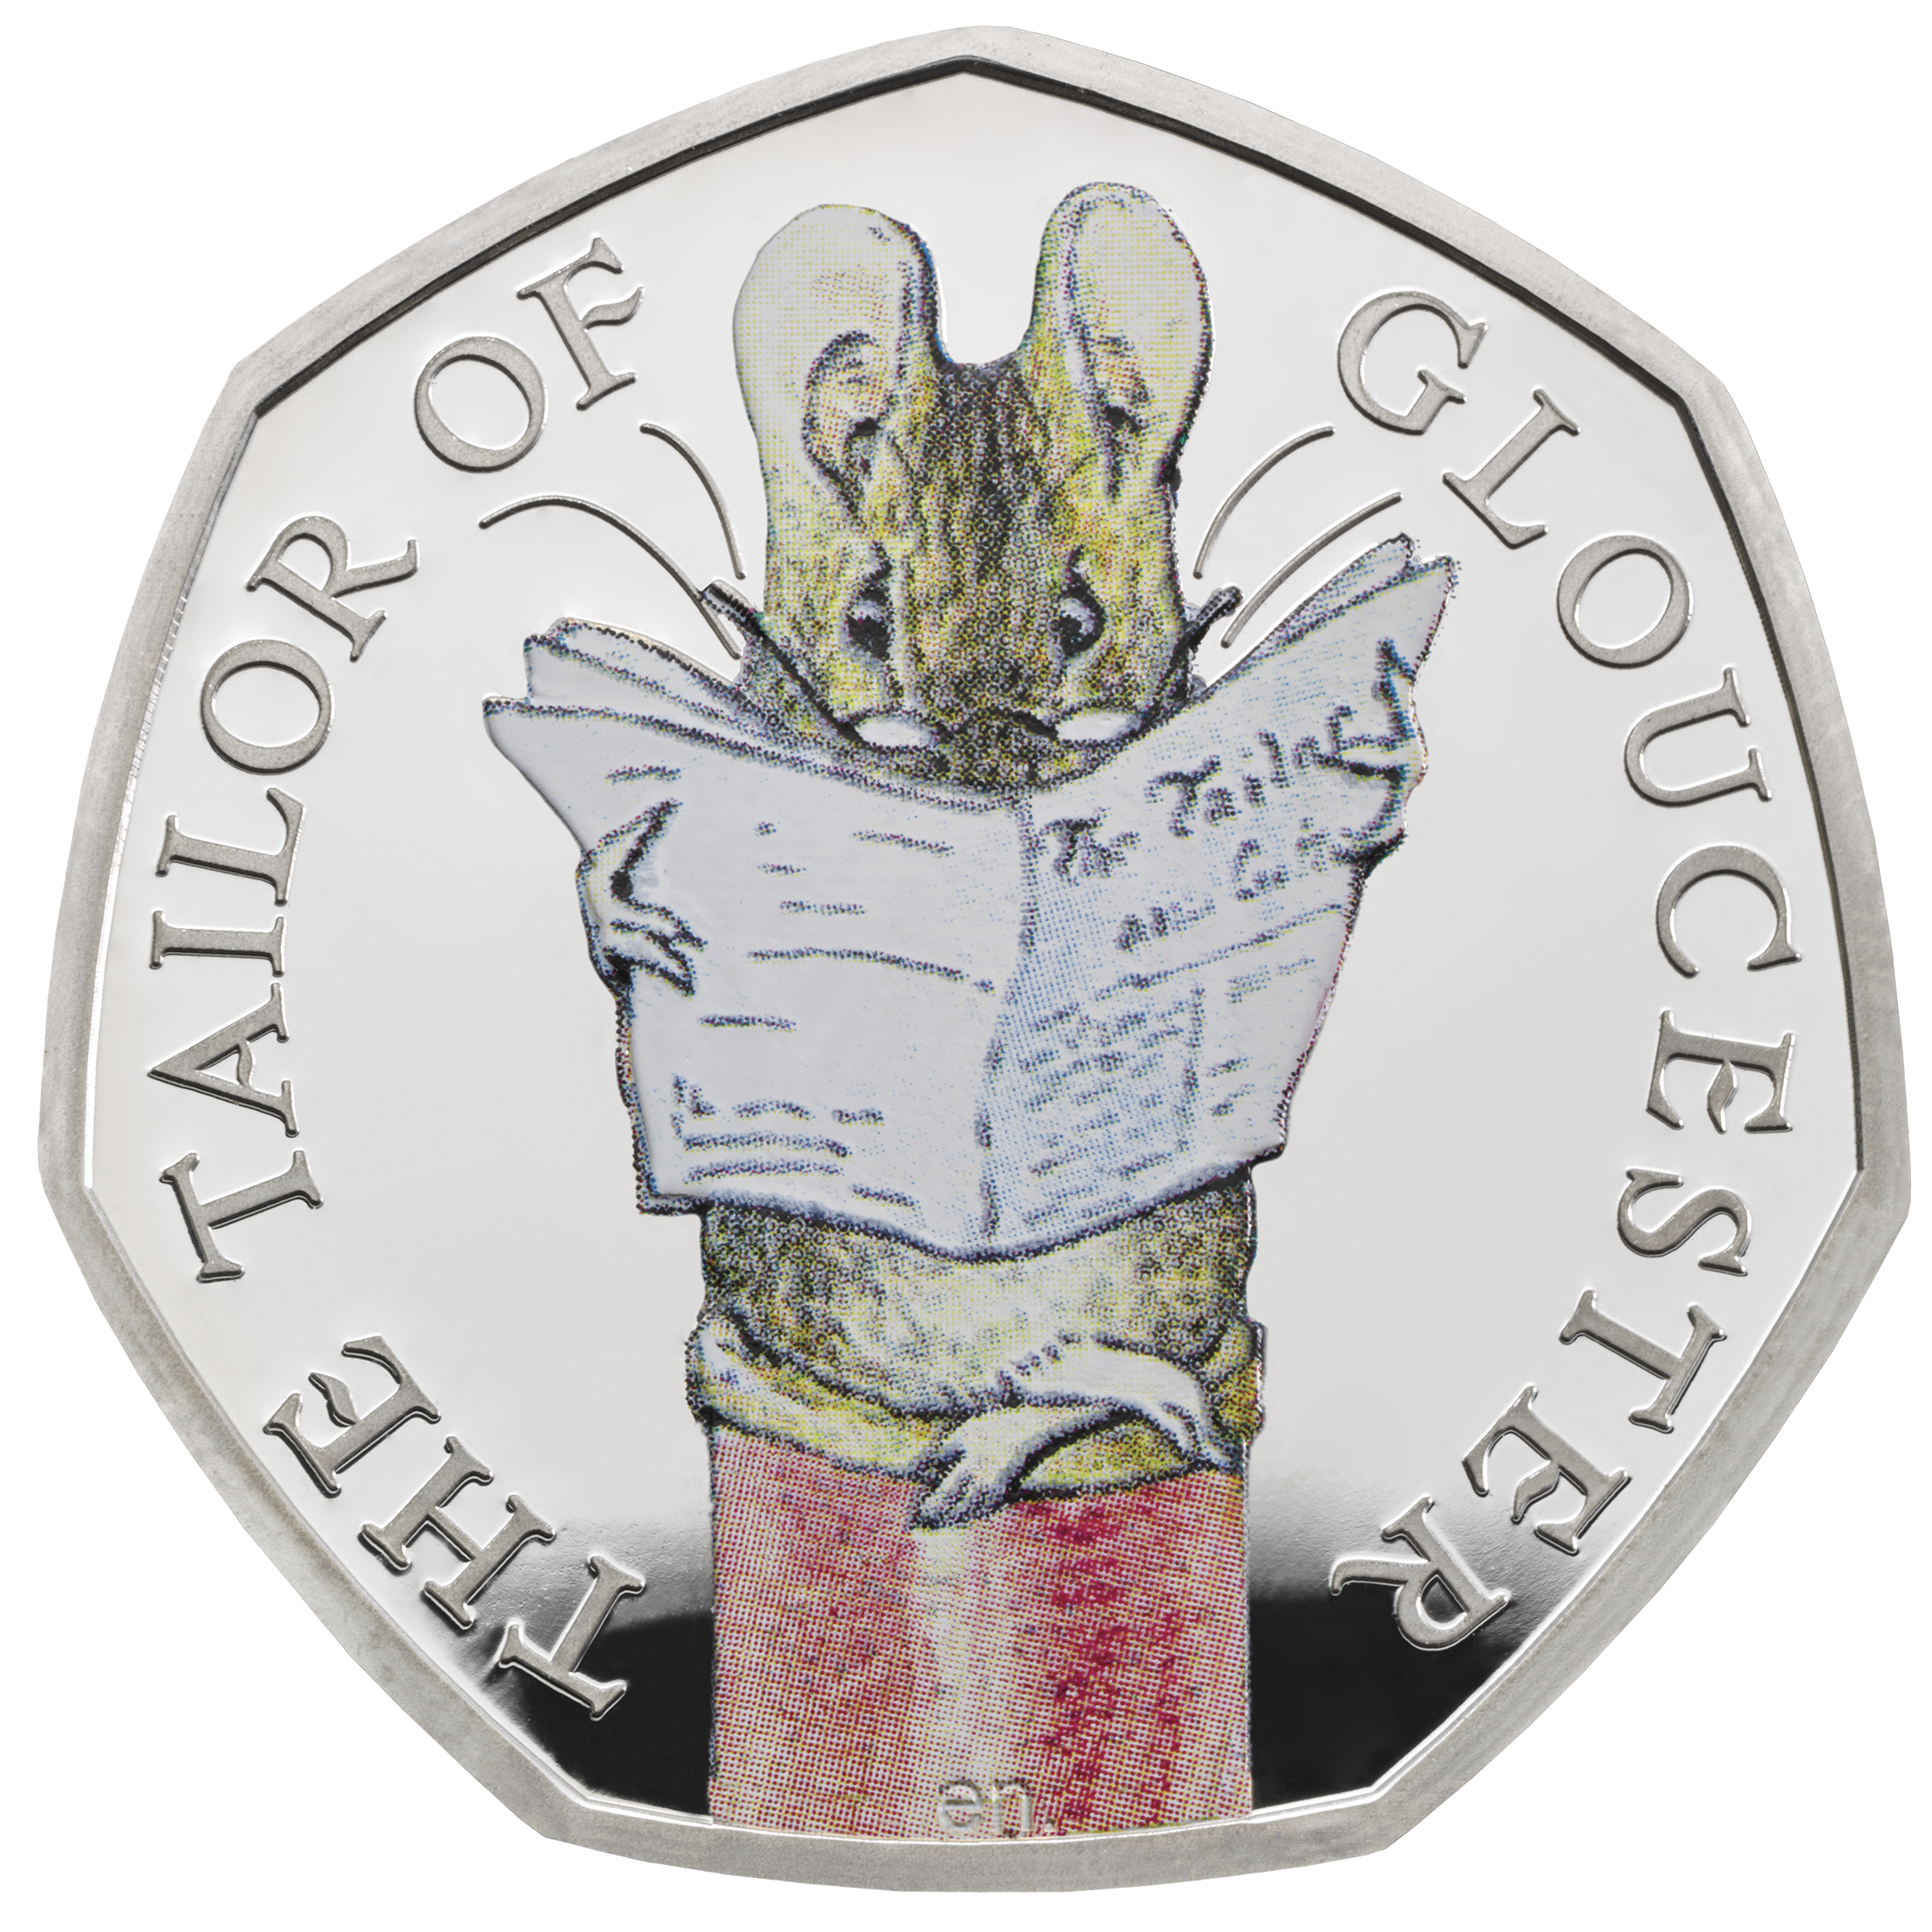 The Tailor of Gloucester 2018 UK 50p Silver Proof Coin rev tone - ukp72894.png